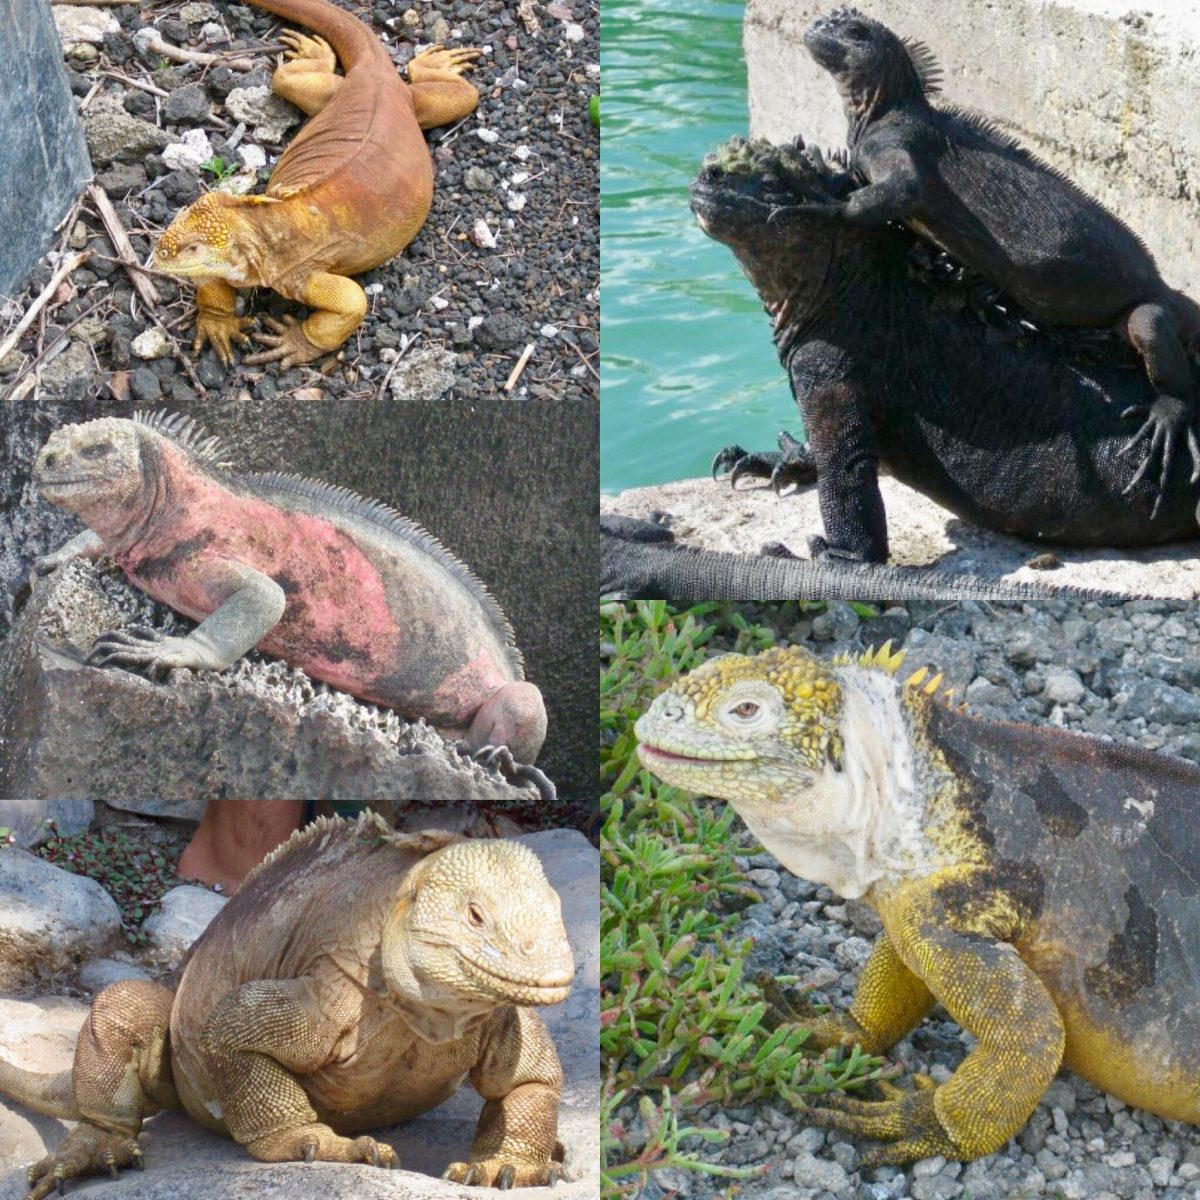 types of iguanas in the Galapagos islands